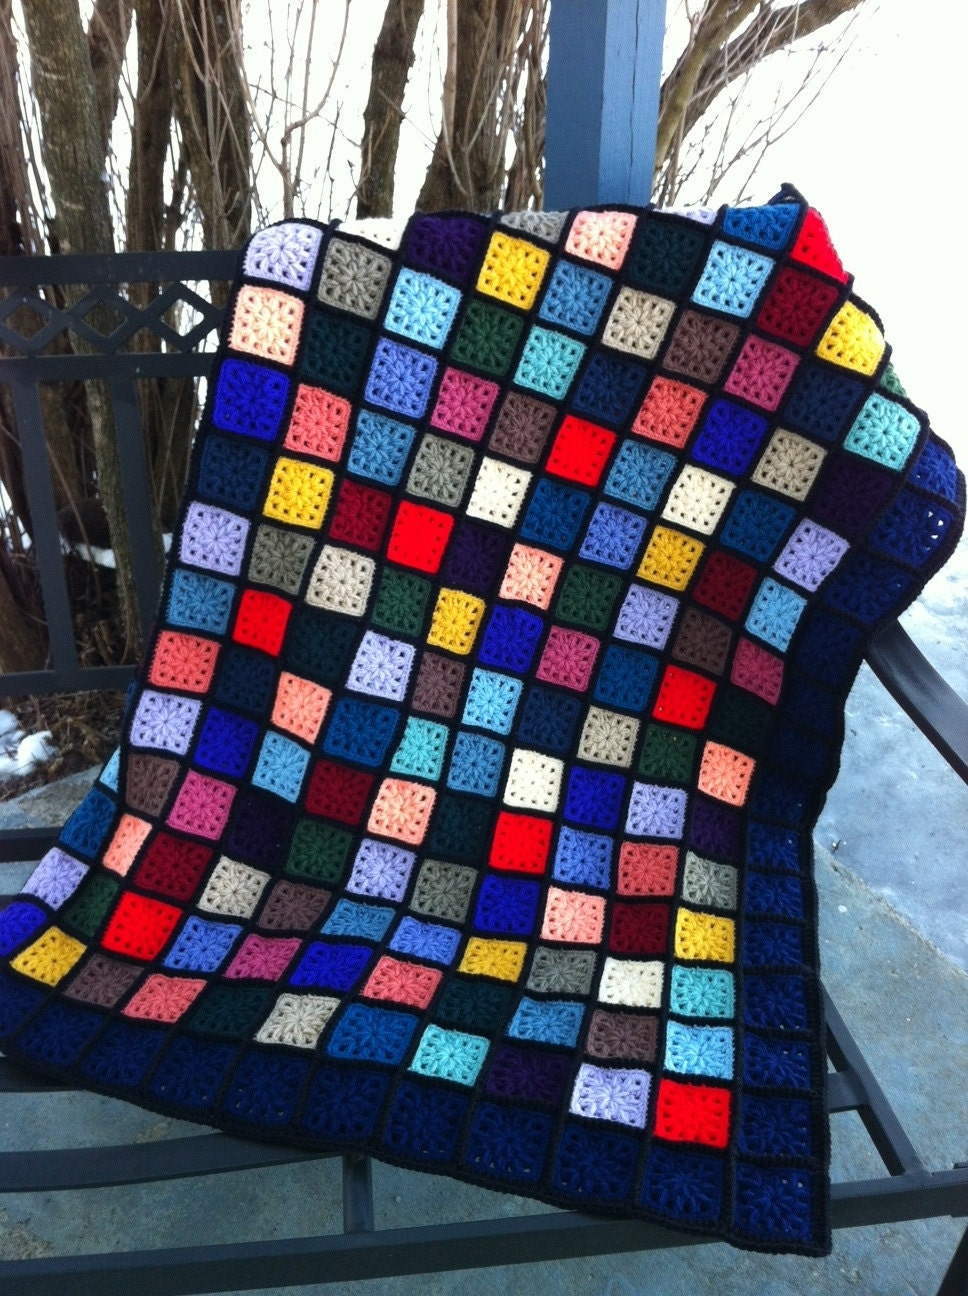 Kaleidoscope Stained Glass Crocheted Granny Square Afghan